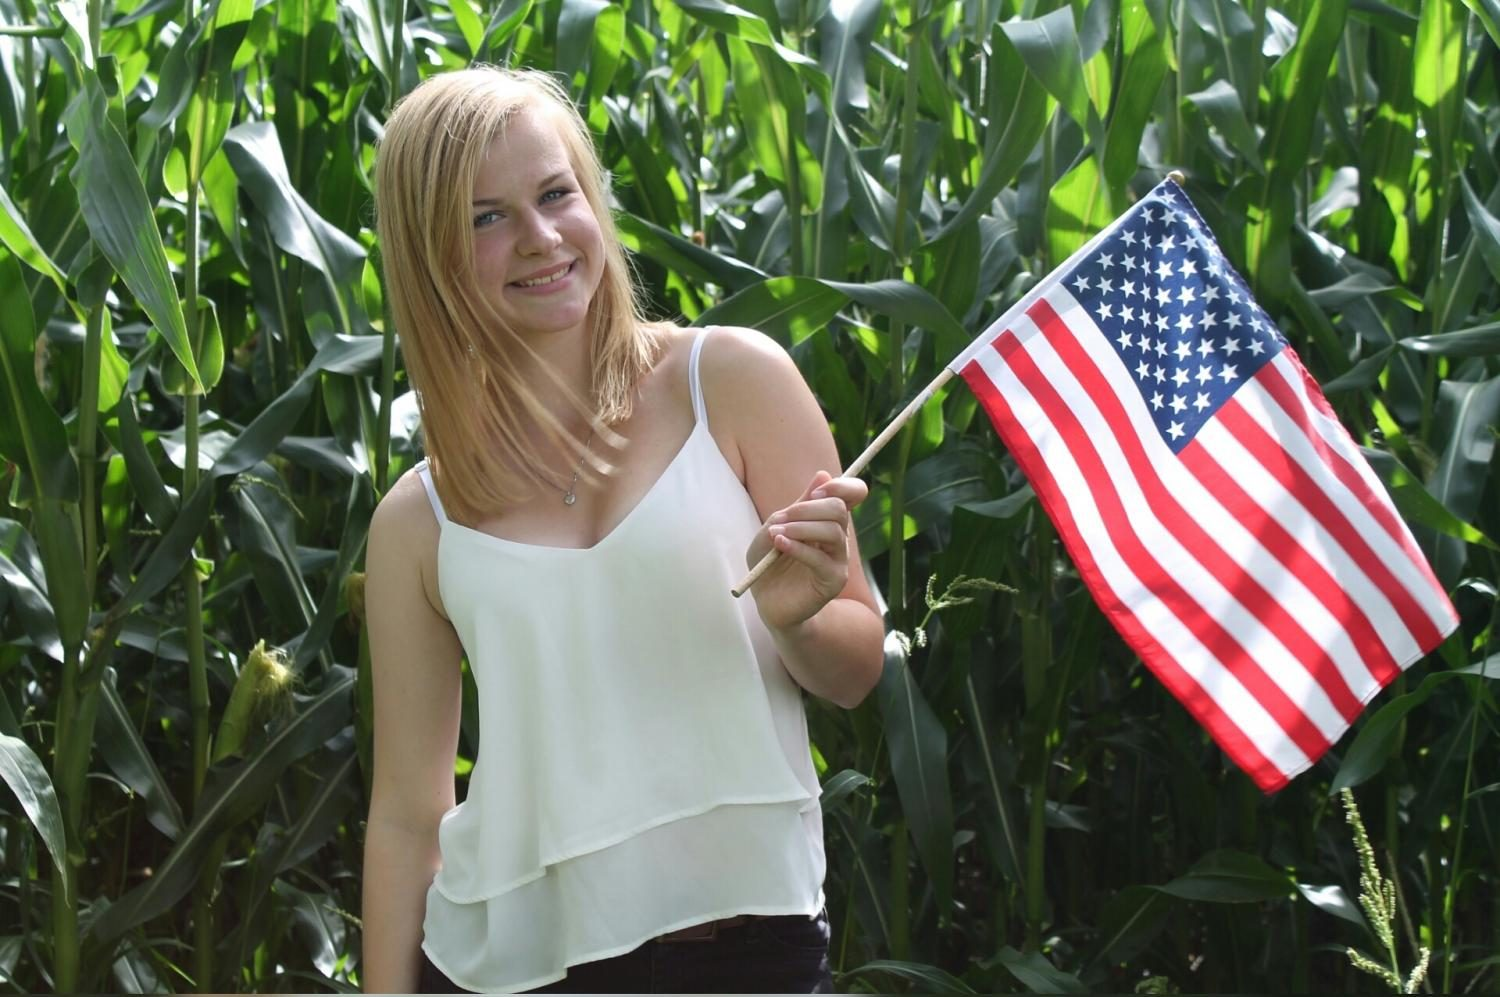 Sophomore+Louisa+Boockhoff+posing+with+an+American+Flag.+